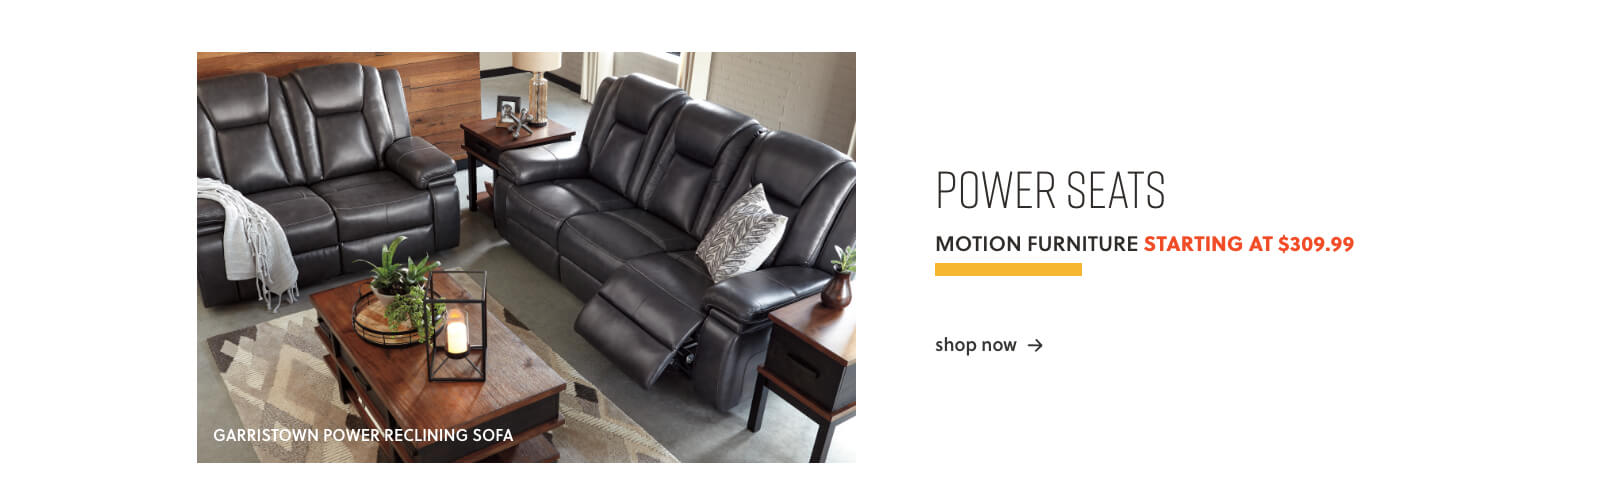 Power Furniture